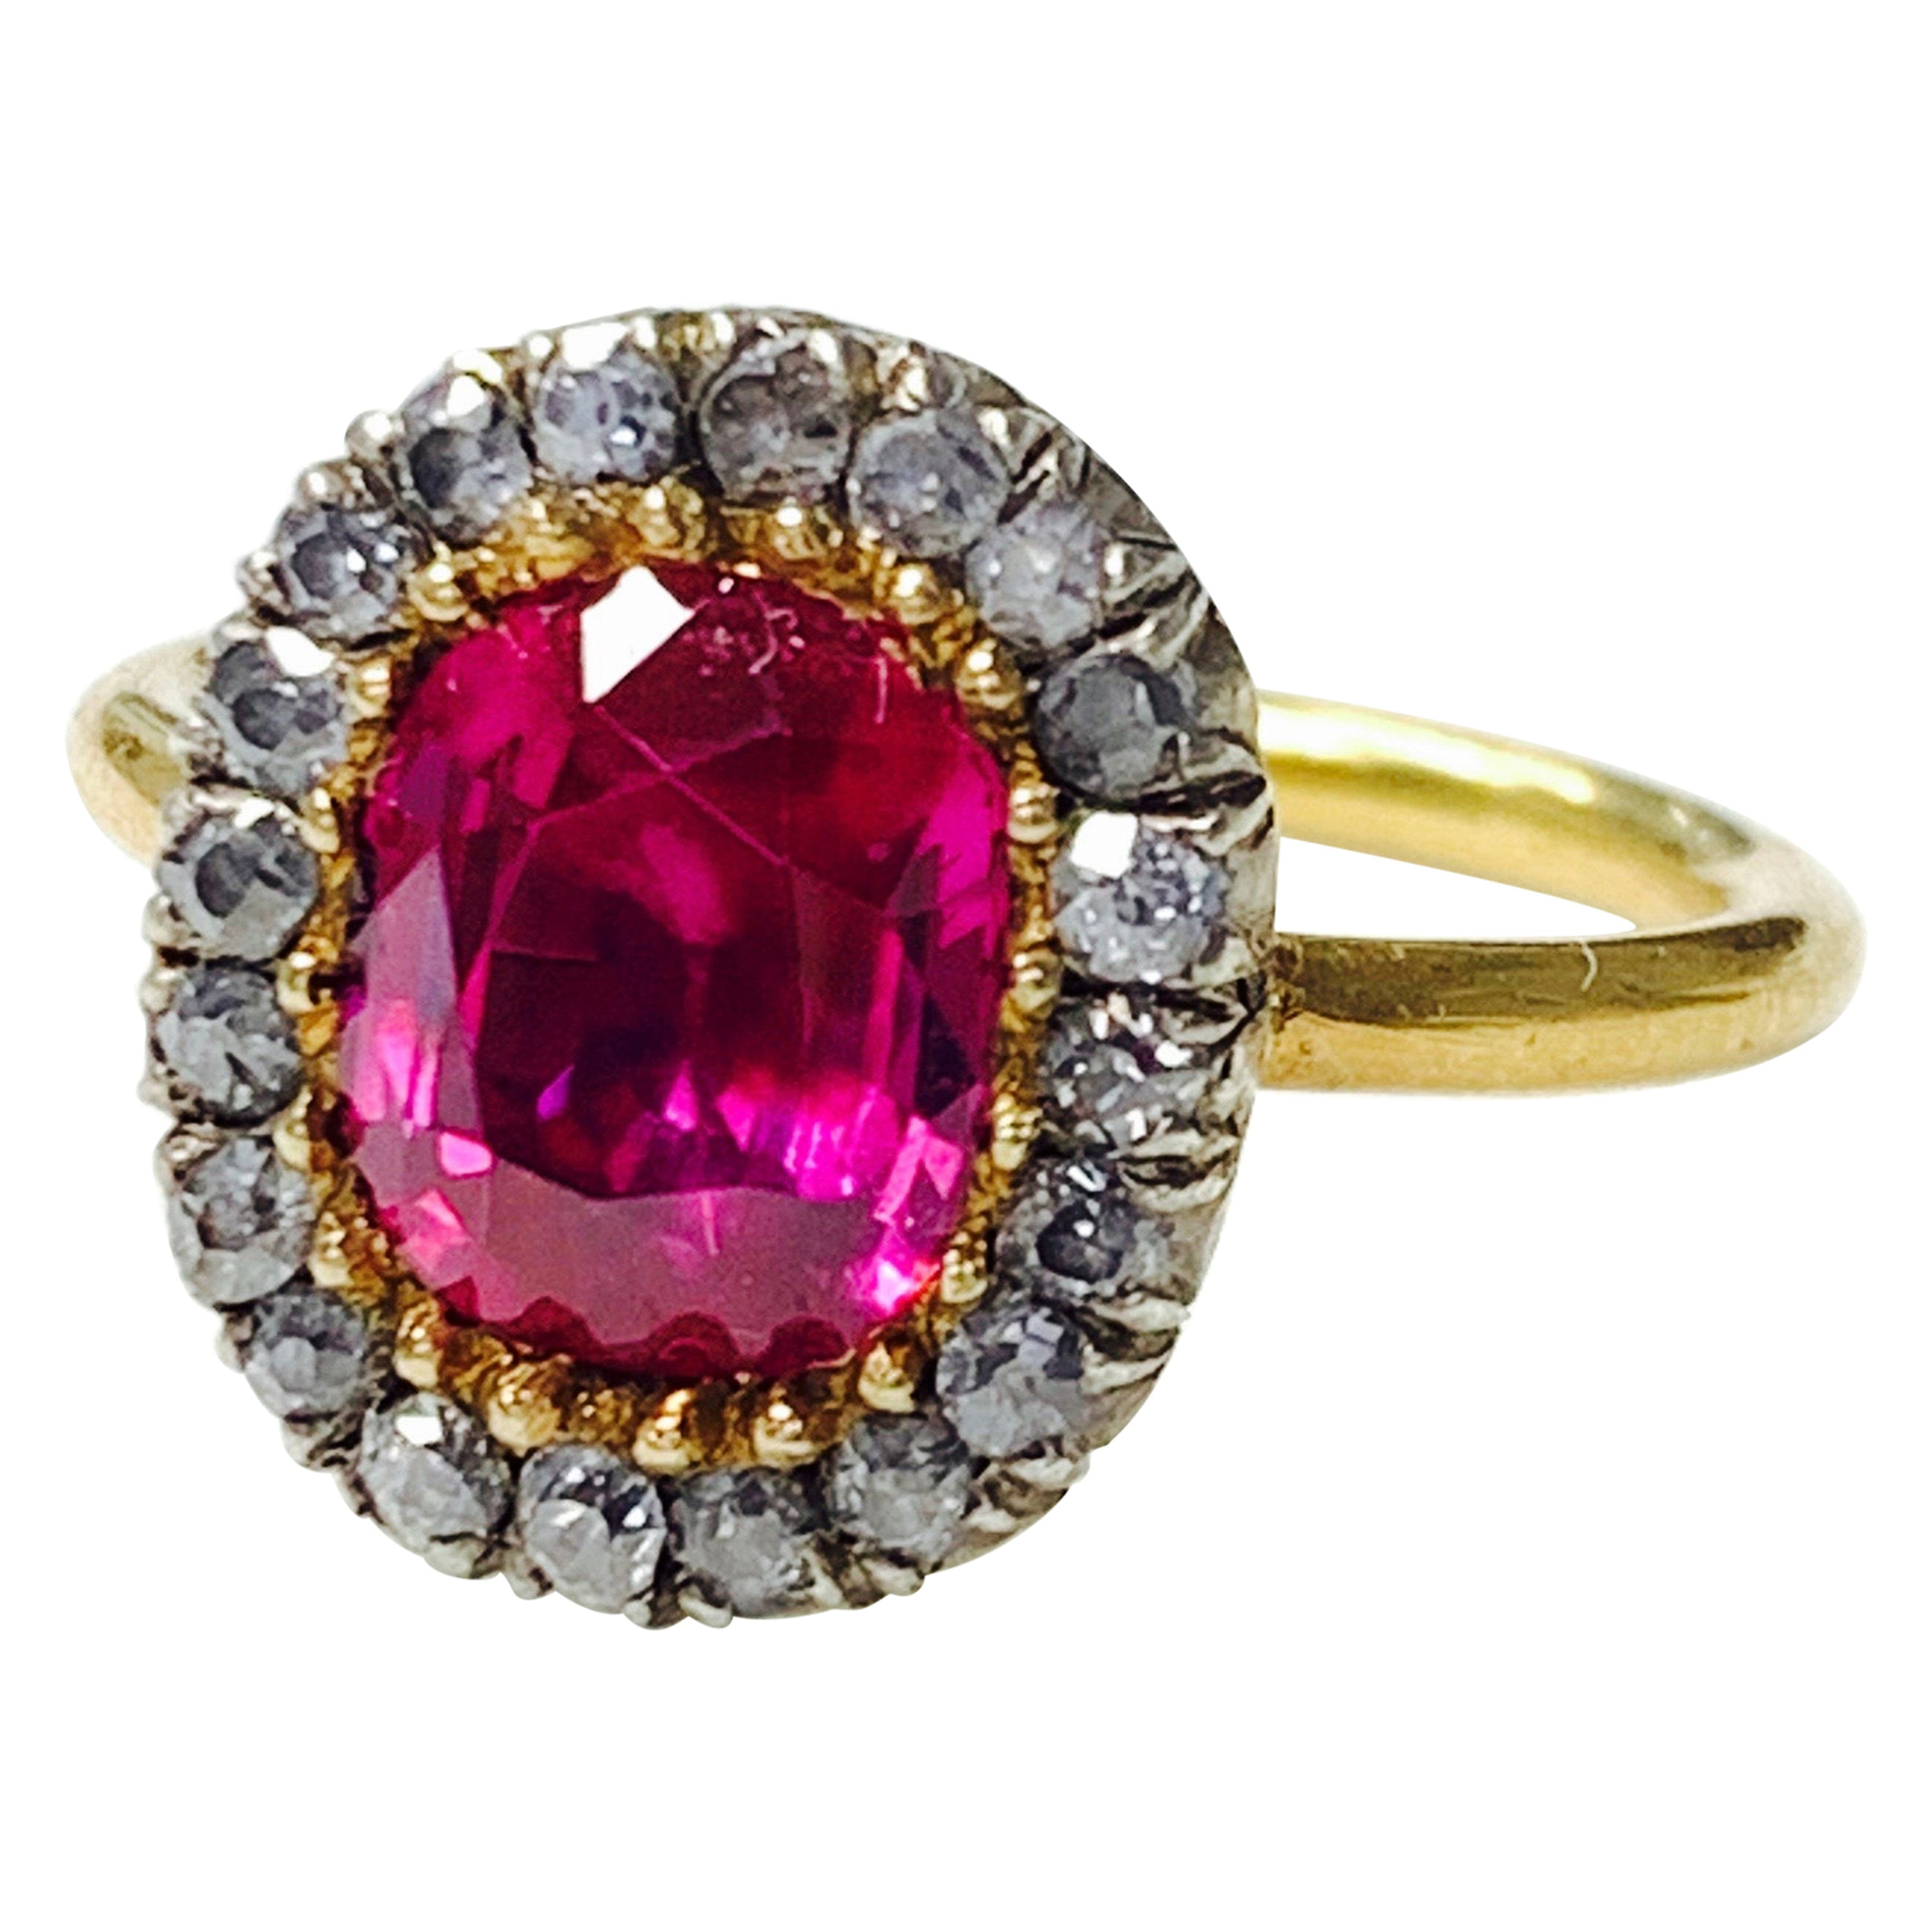 AGL Certified 1920 Antique Burma No Heat Oval Ruby and Diamond Ring